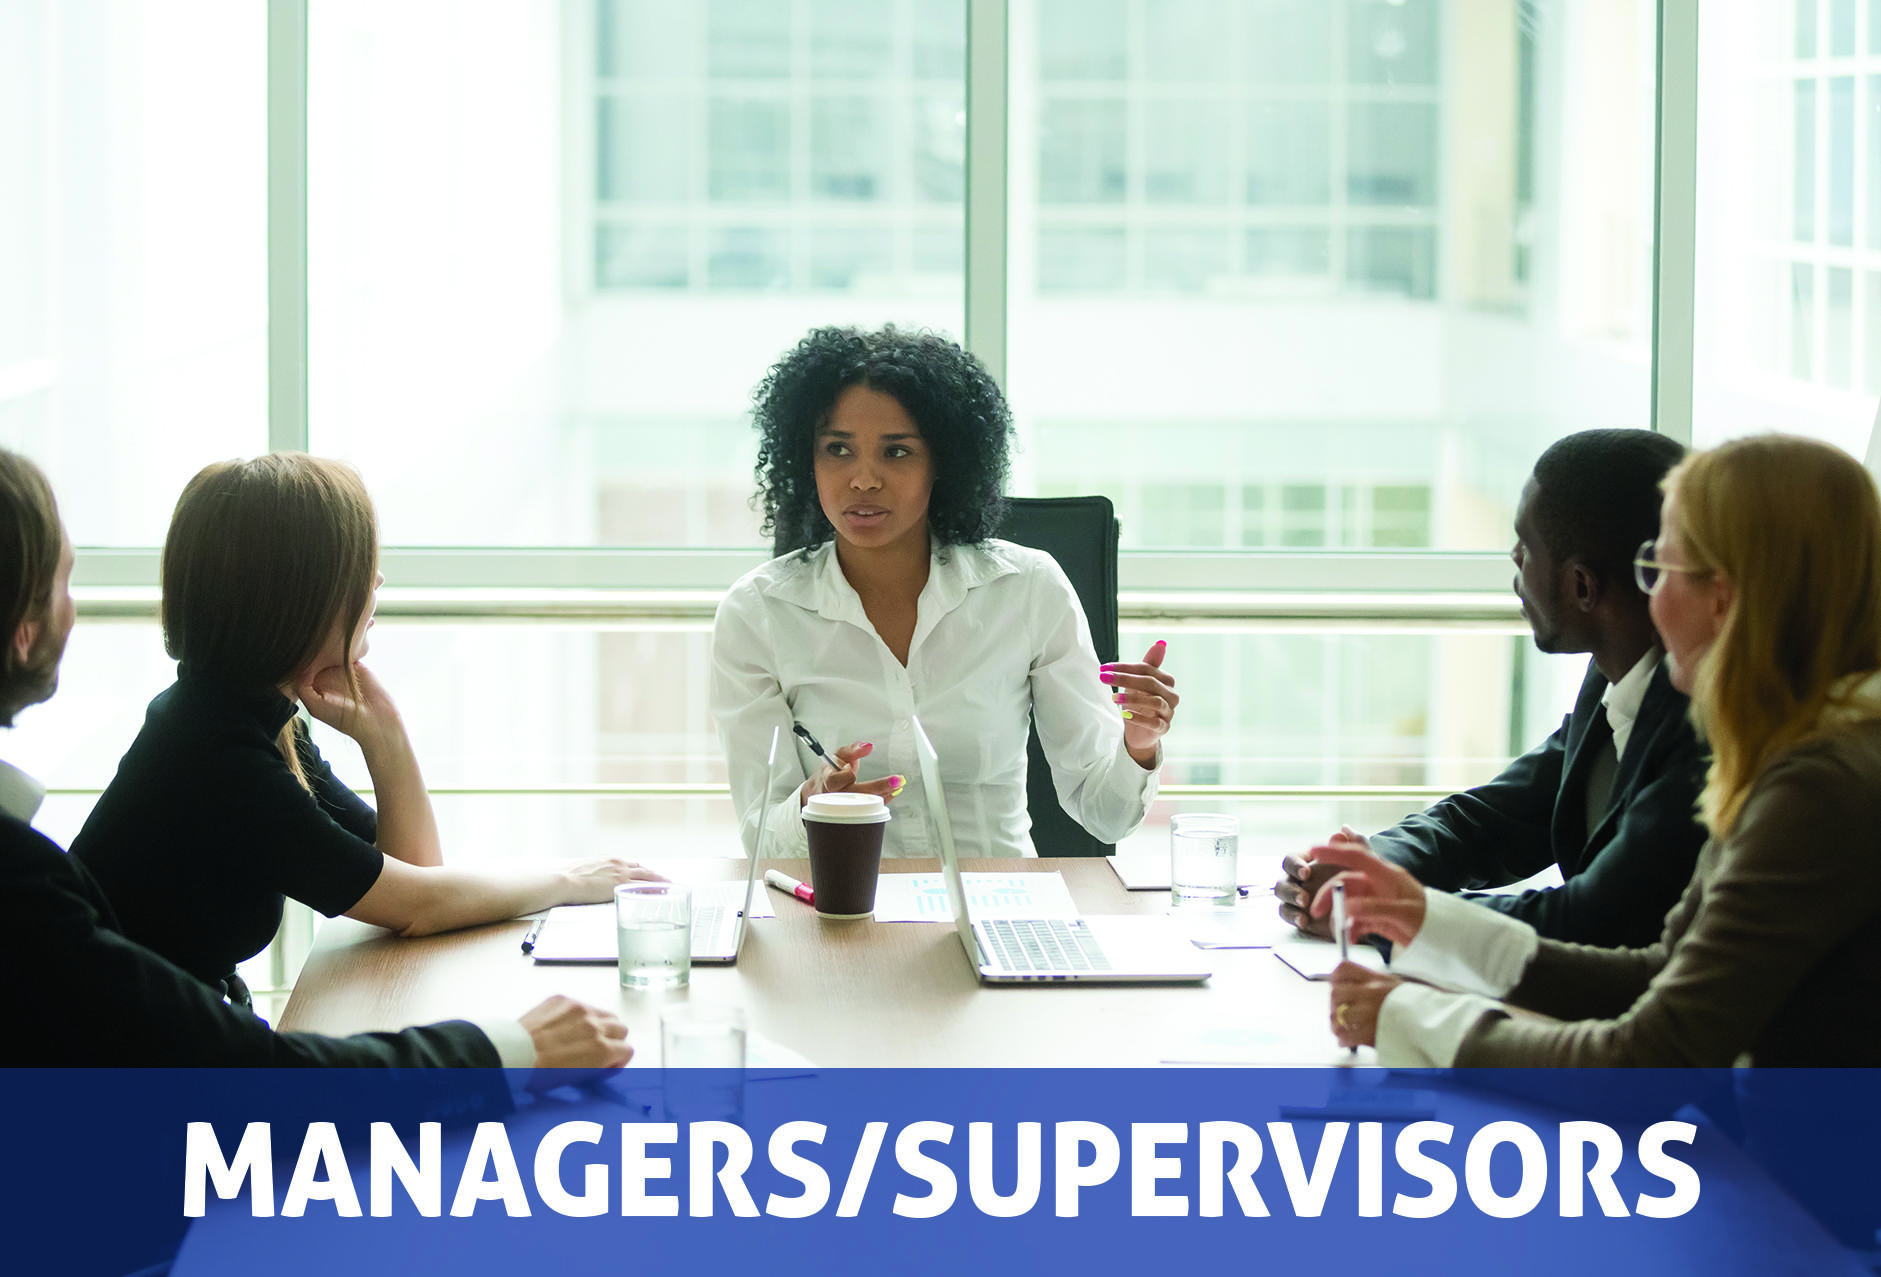 Managers/Supervisors